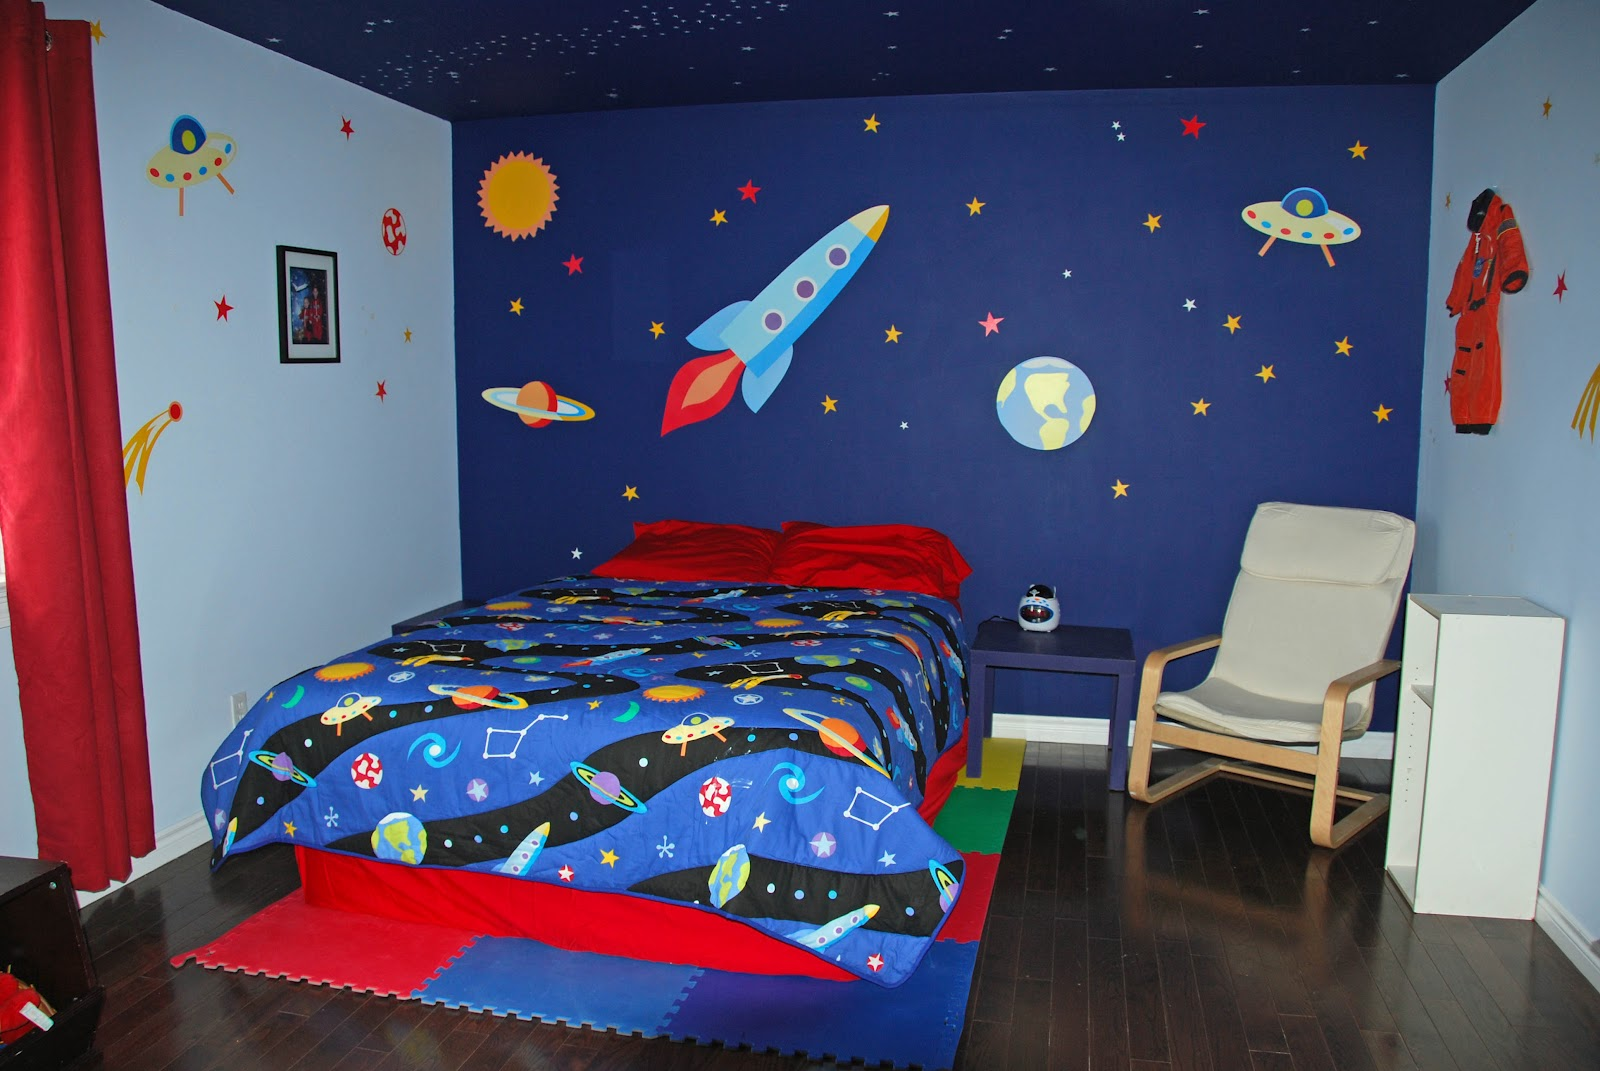 38 impeccable kids room decor ideas homebliss for 8 year old room decor ideas